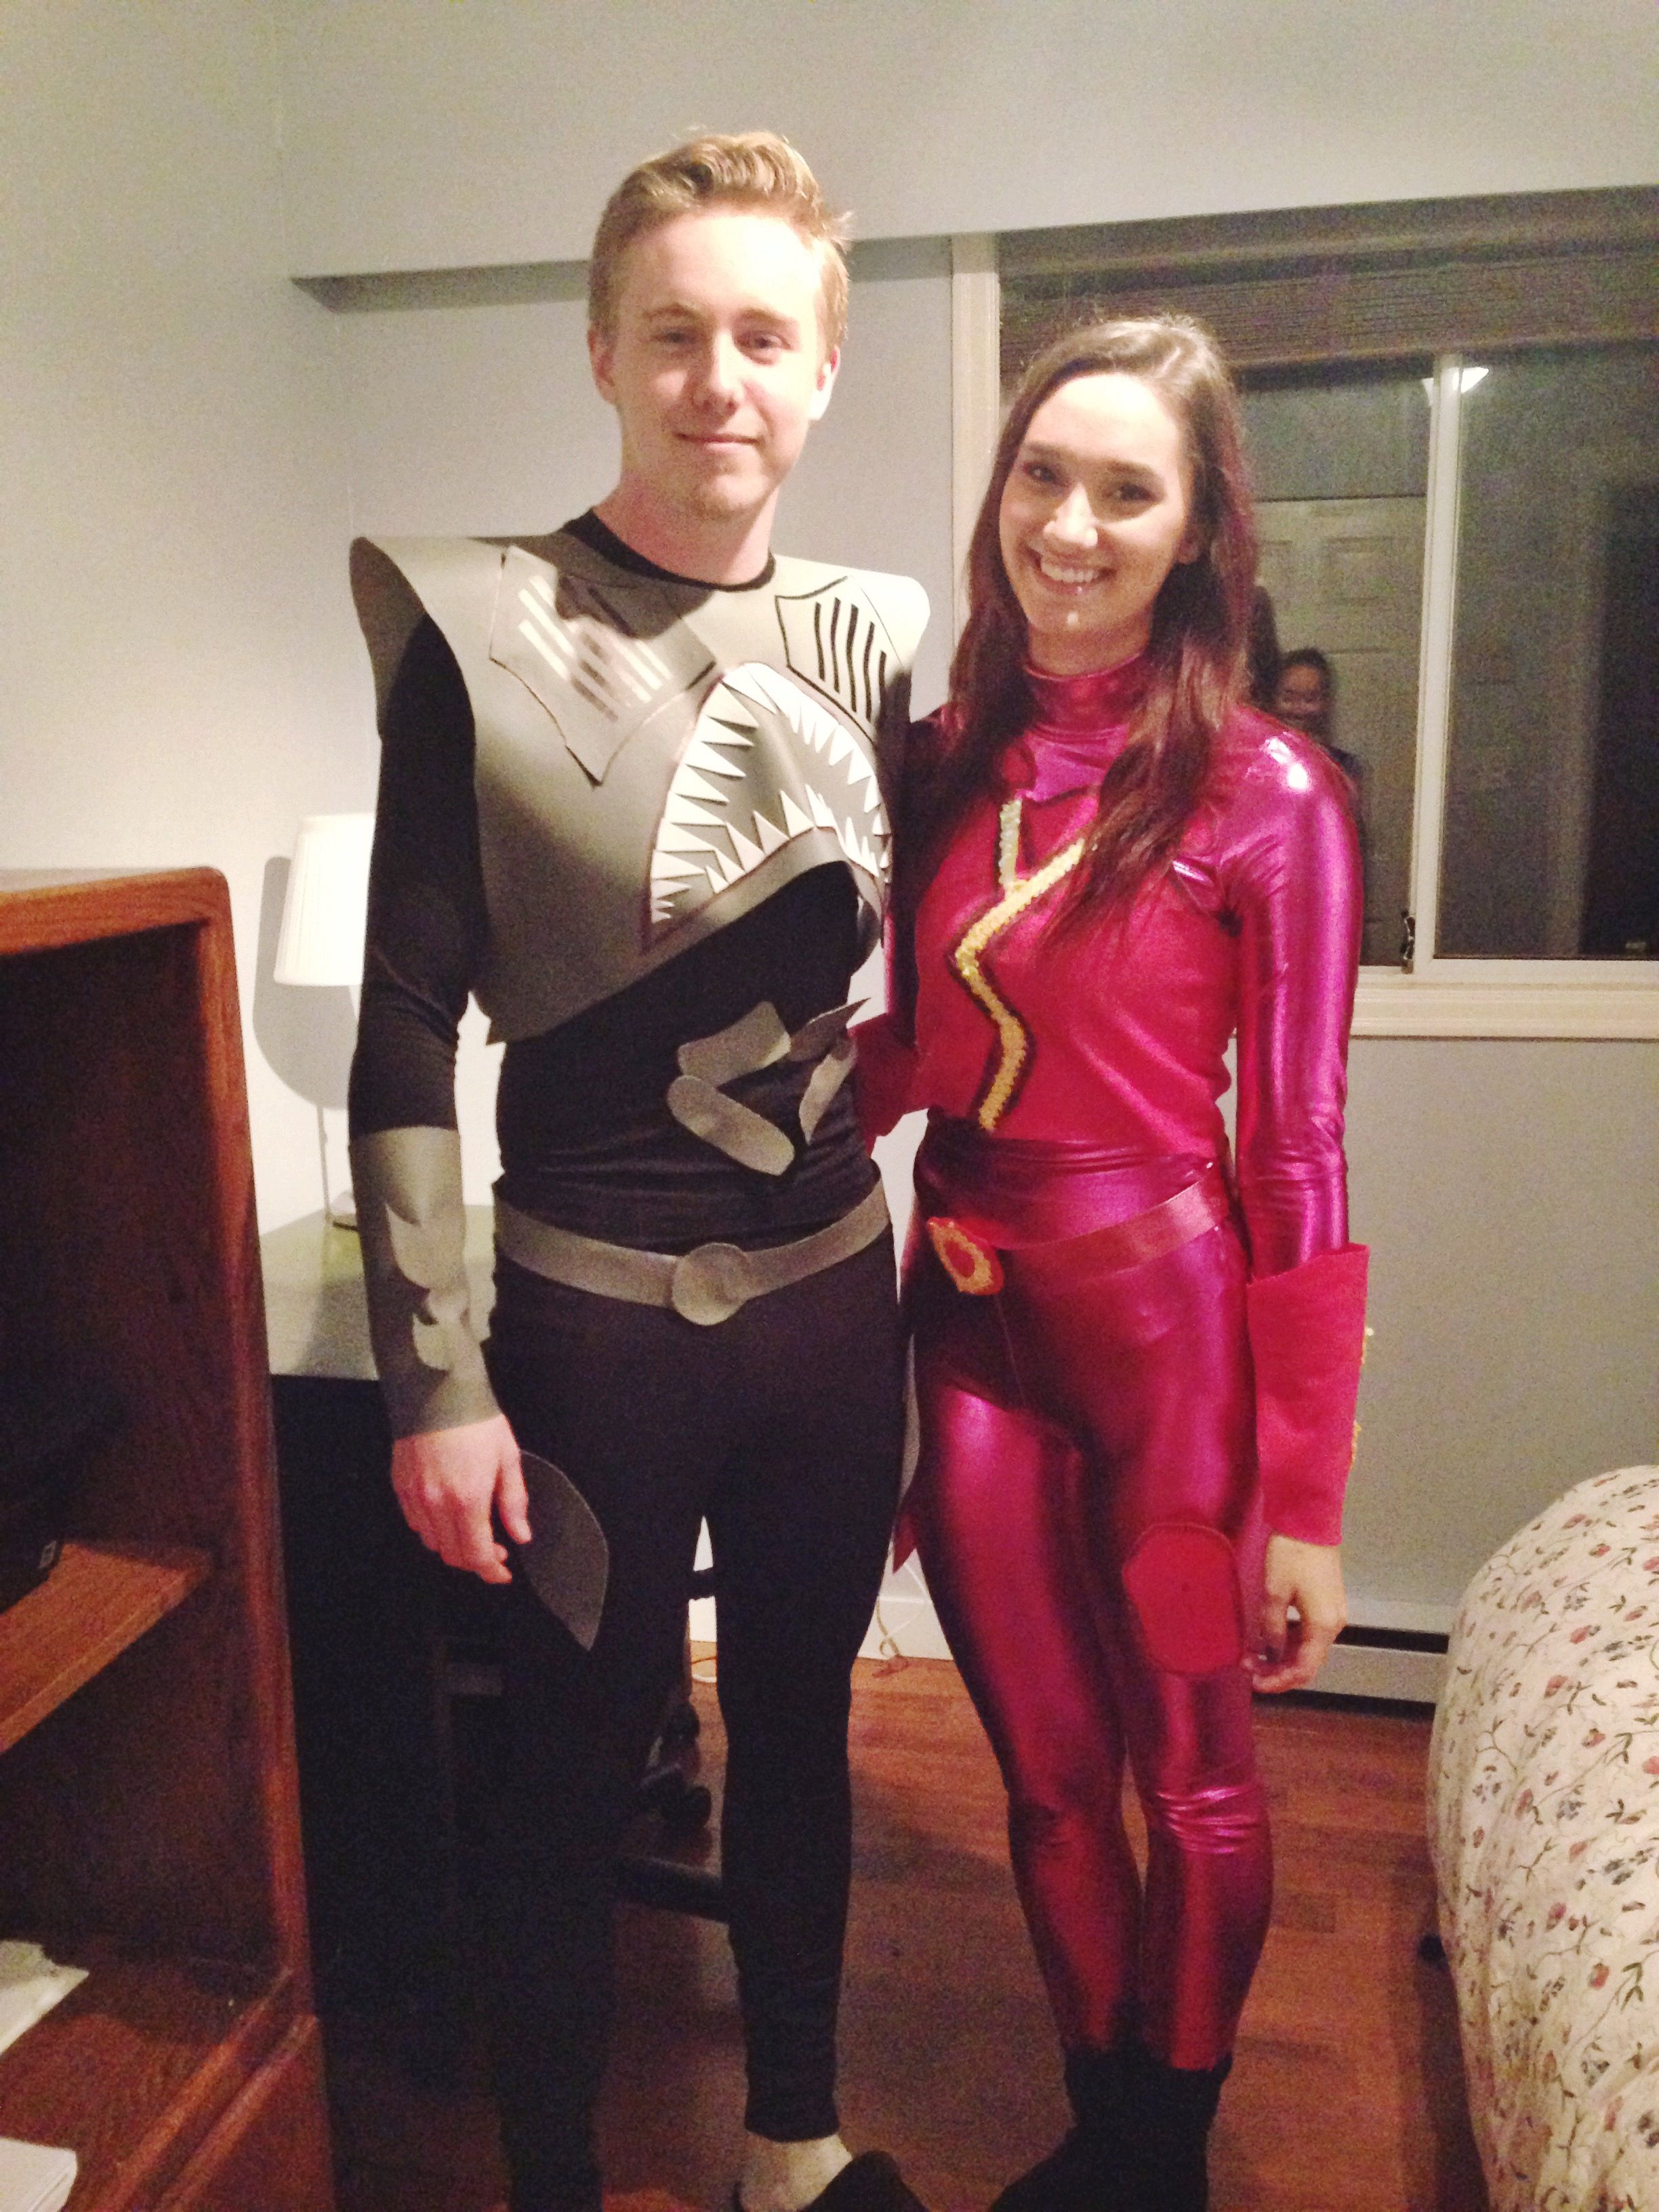 Sharkboy And Lavagirl Costume Halloween Costume Couples Costume Throwback